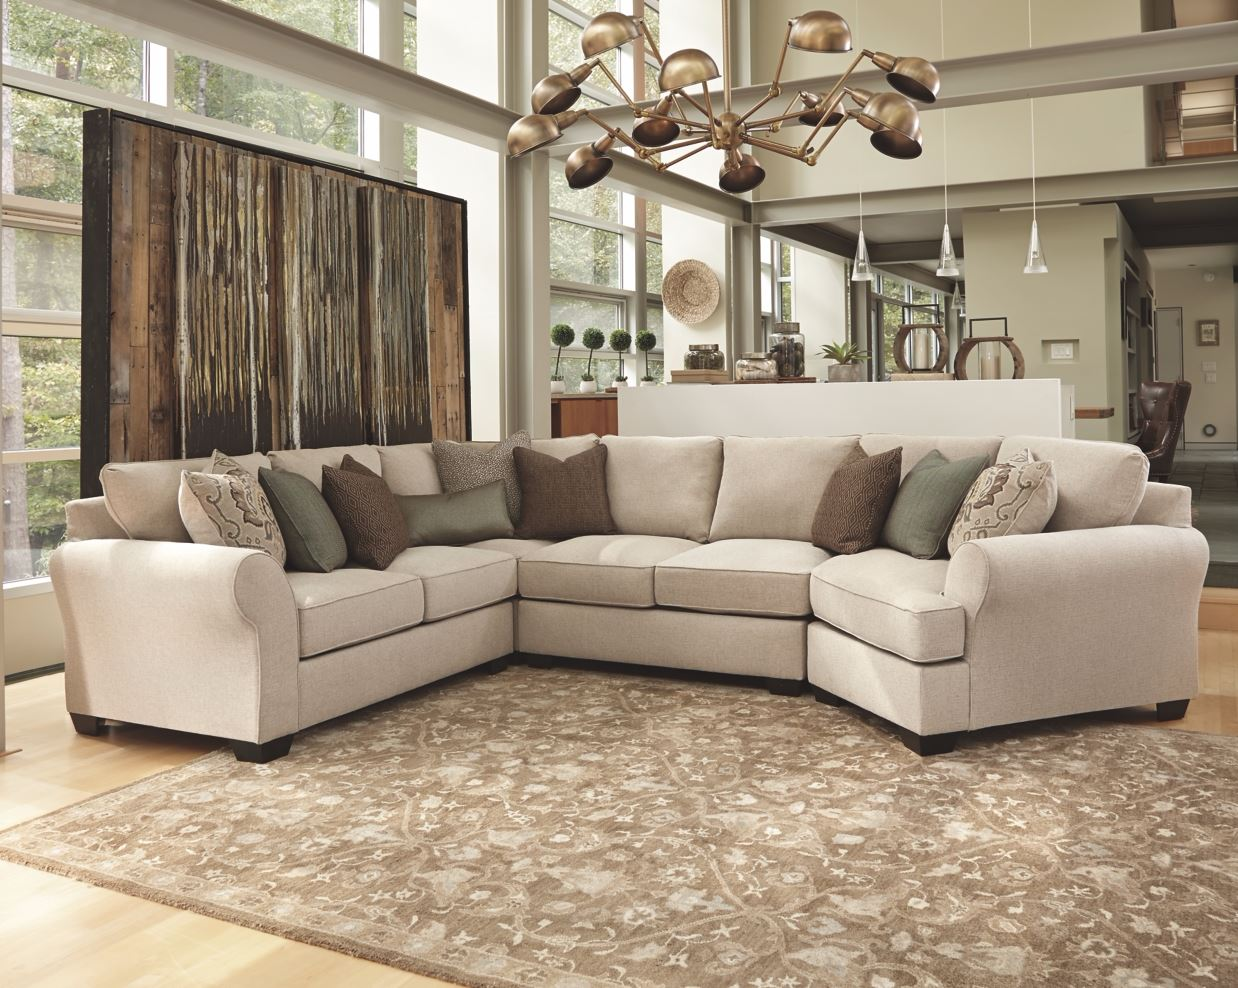 Ashley Furniture Clearance Sales 70 Off 5 Tips For